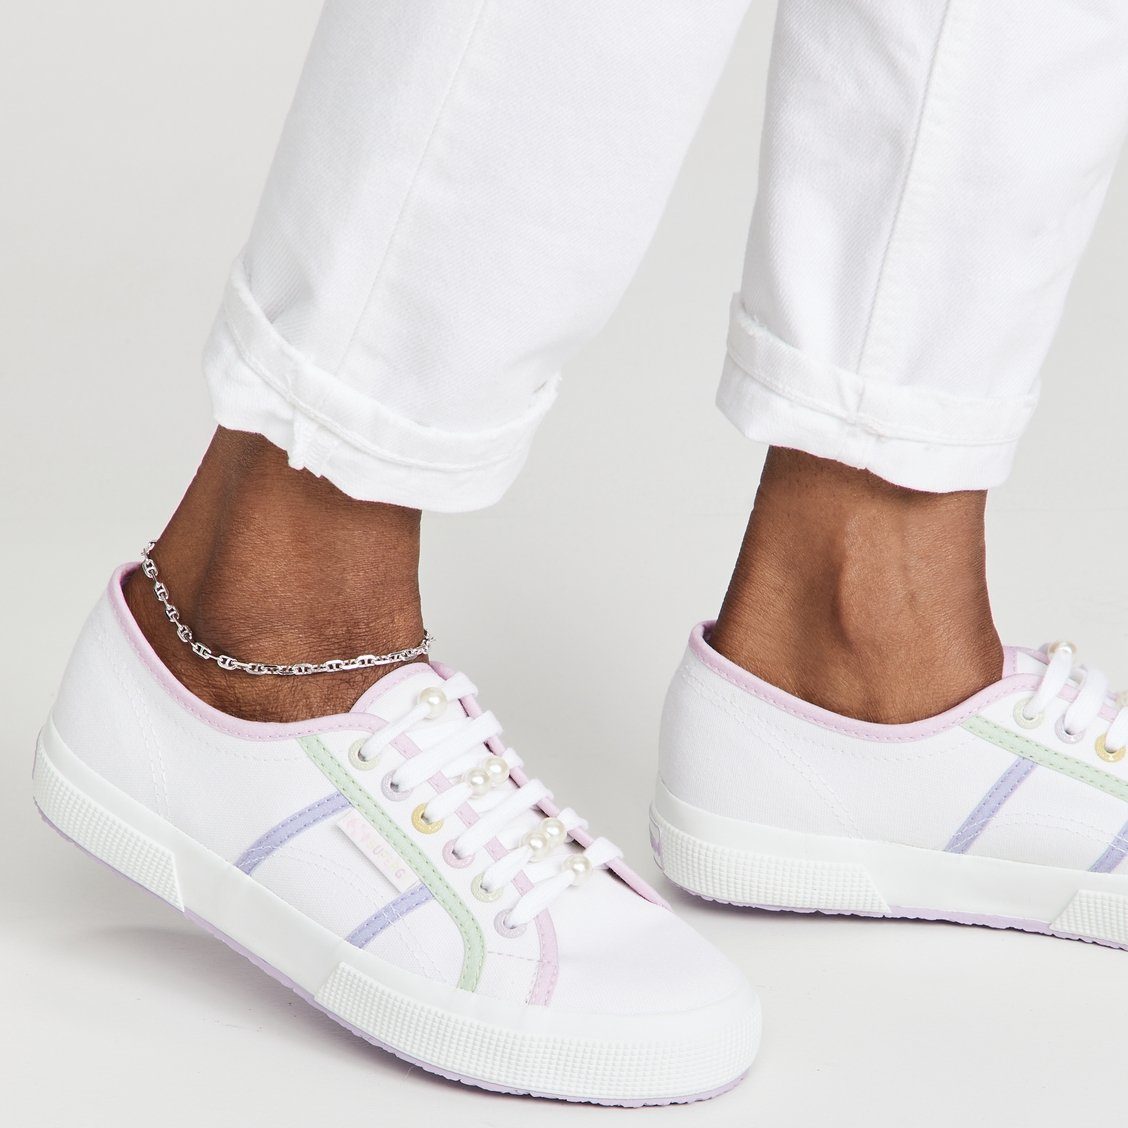 Olivia Rubin x Superga lace-up sneakers with imitation pearl beads